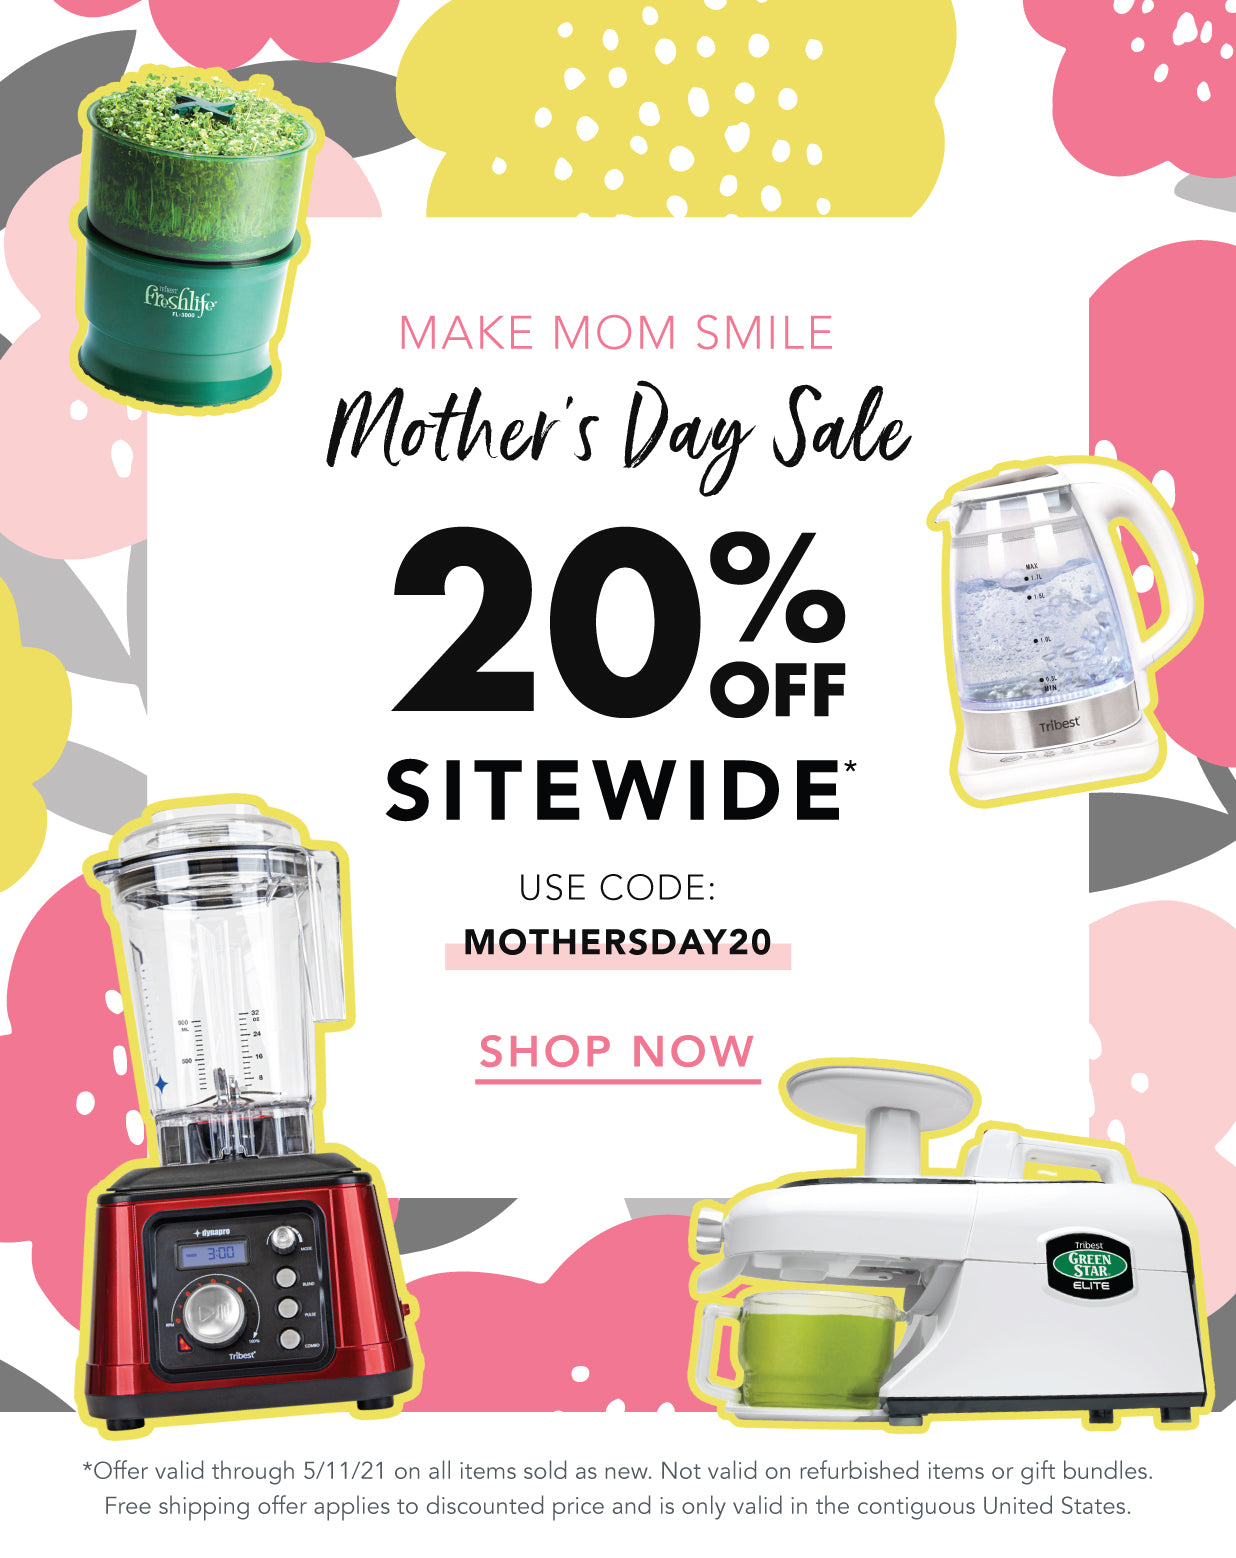 20% off sitewide through 5/11/21 at tribest.com.